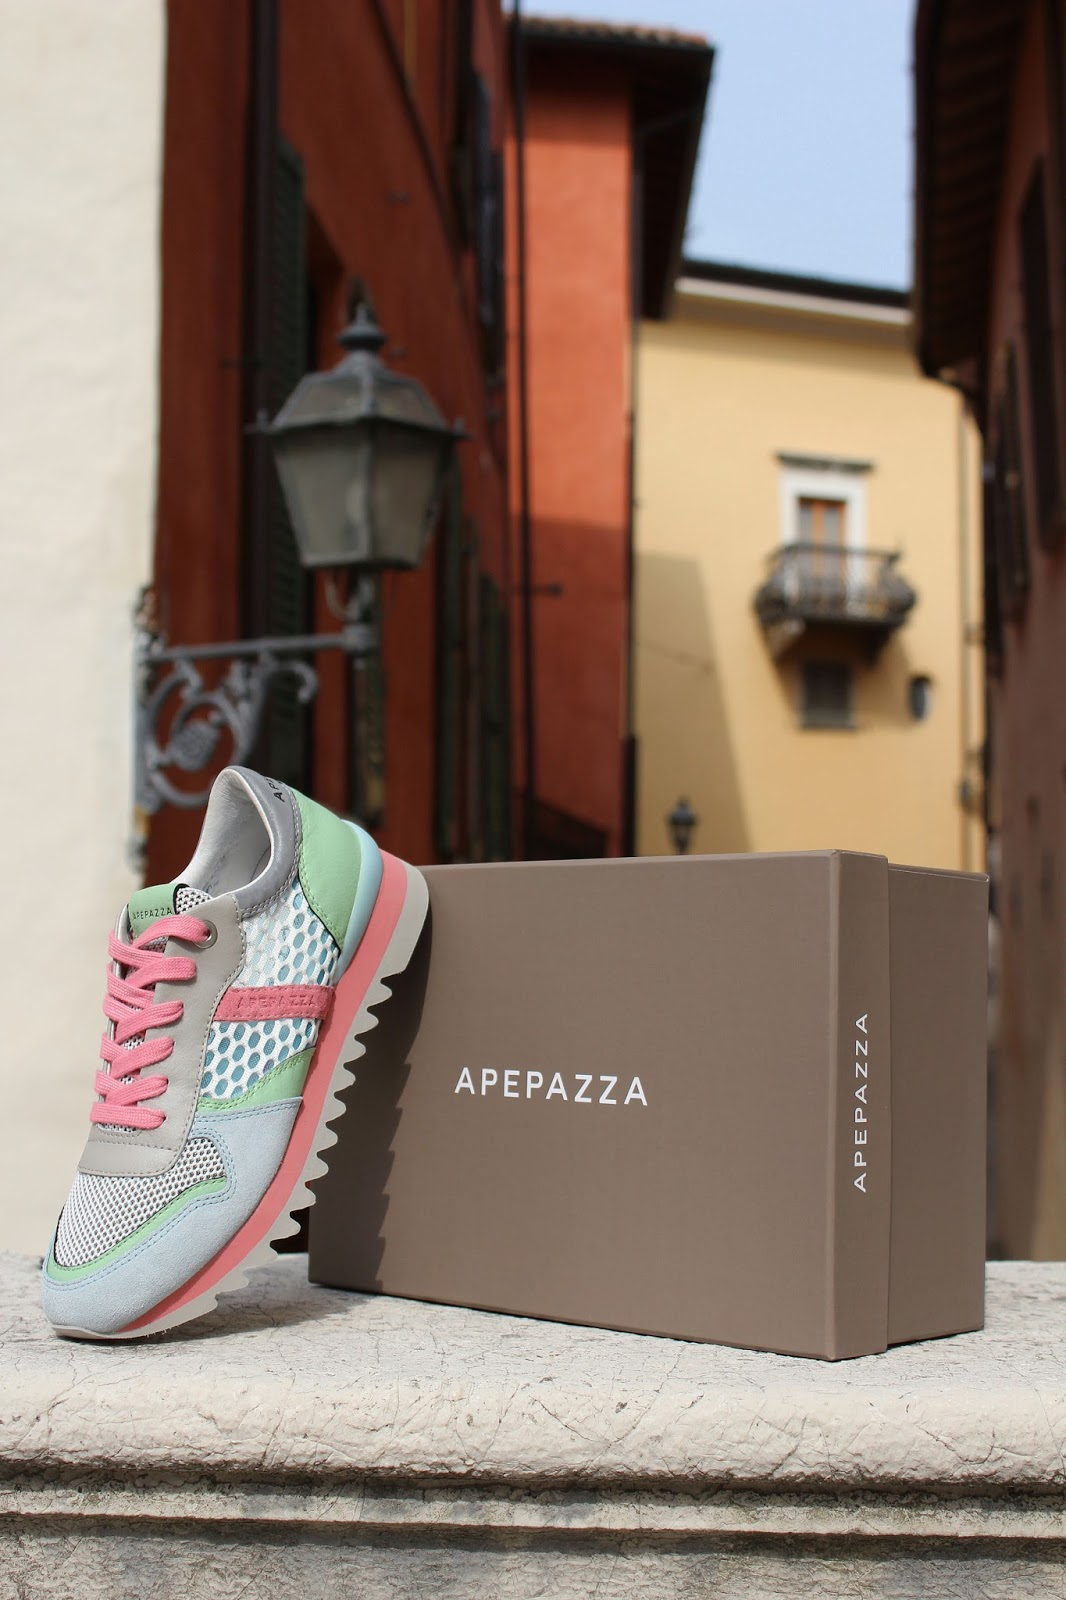 Eniwhere Fashion - Apepazza sneakers